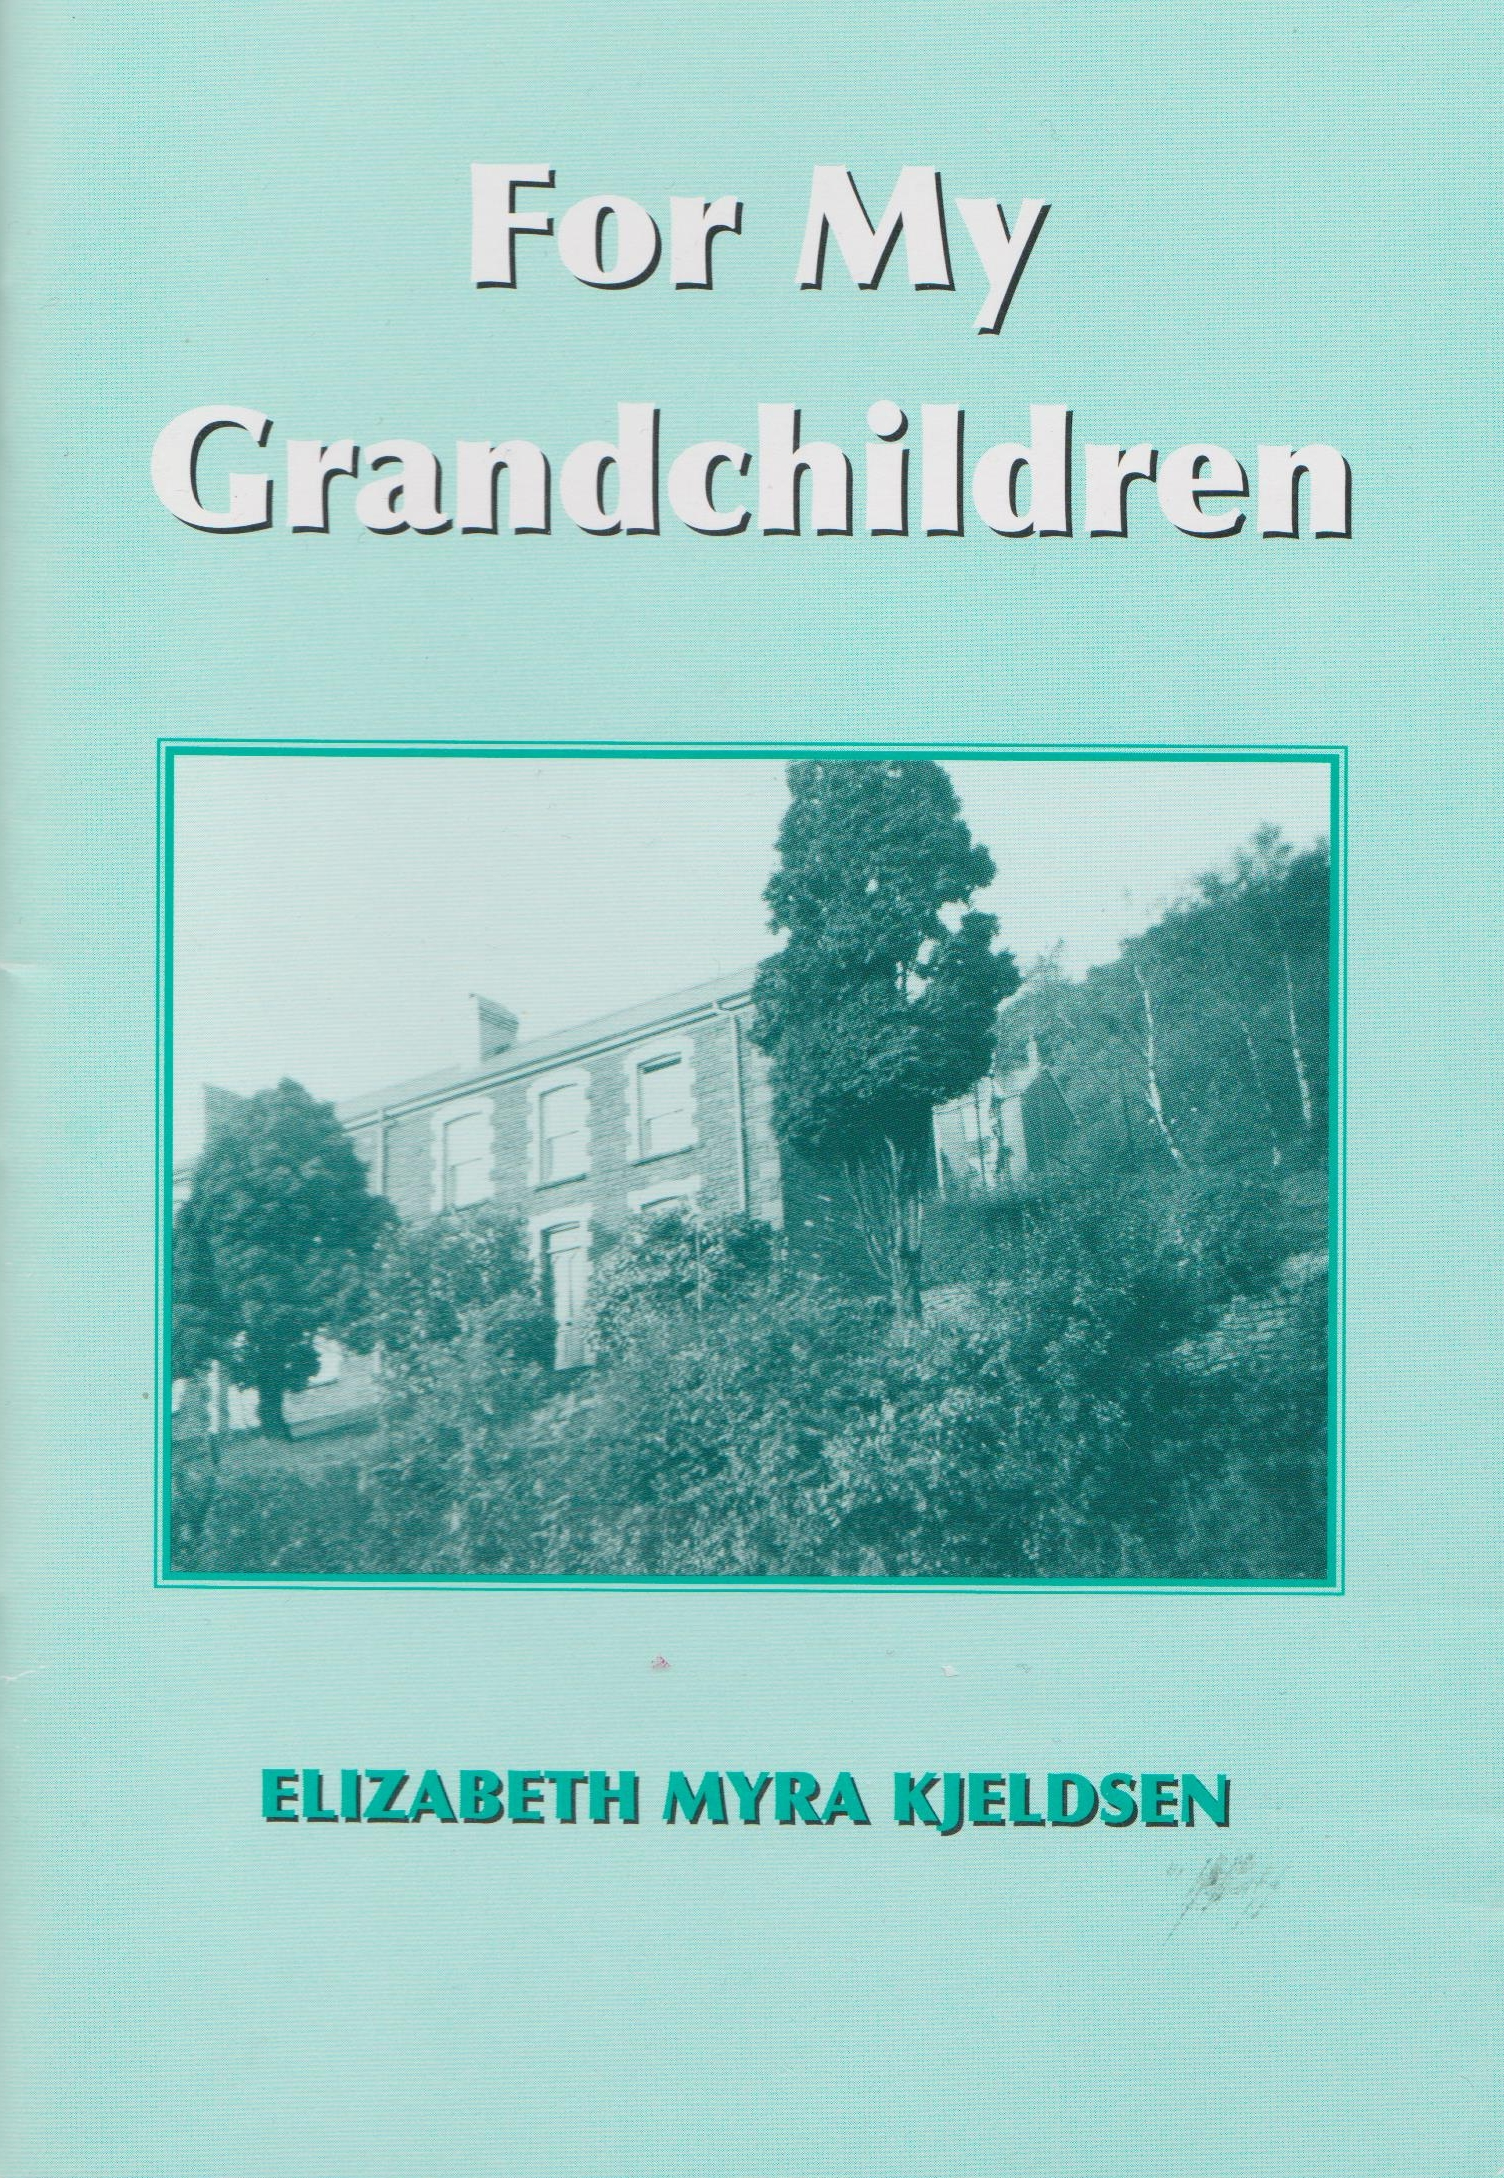 For My Grandchildren, by Elizabeth Myra Kjeldsen